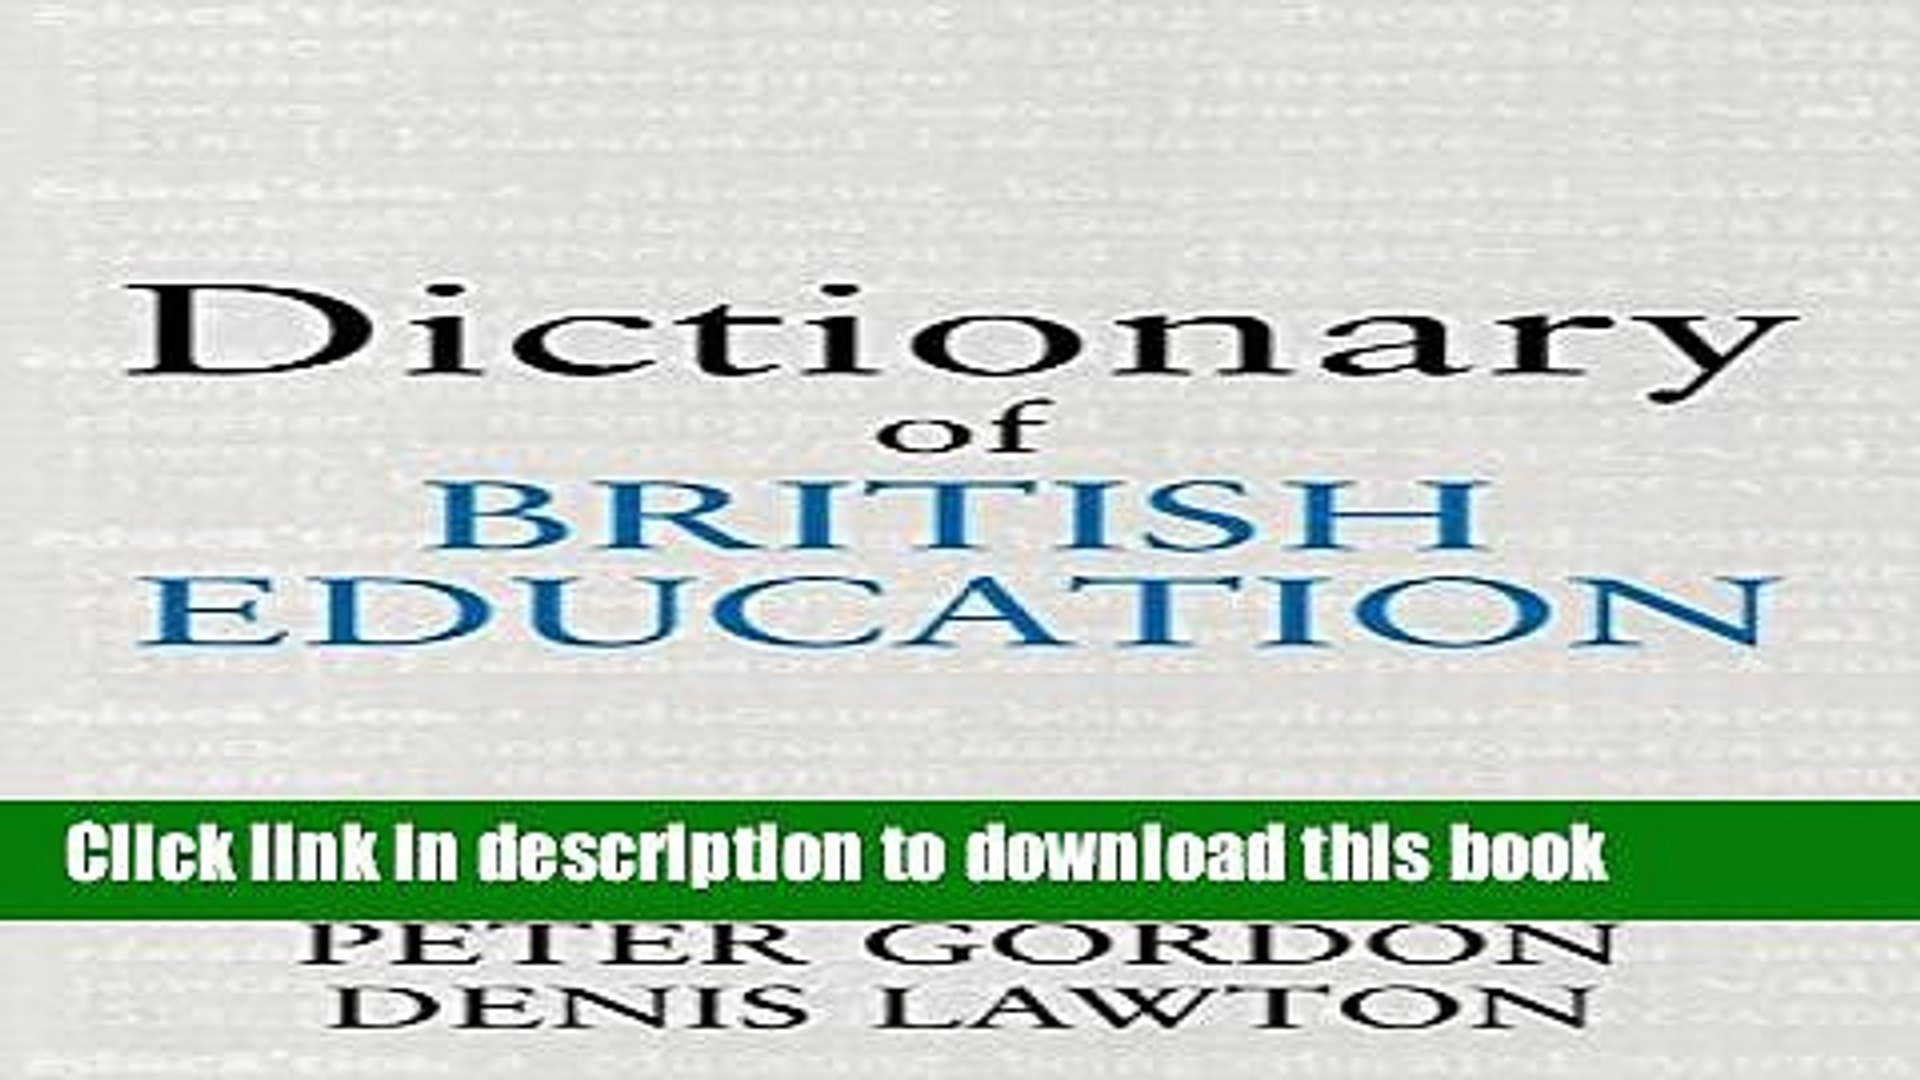 Dictionary of British Education (Woburn Education Series)